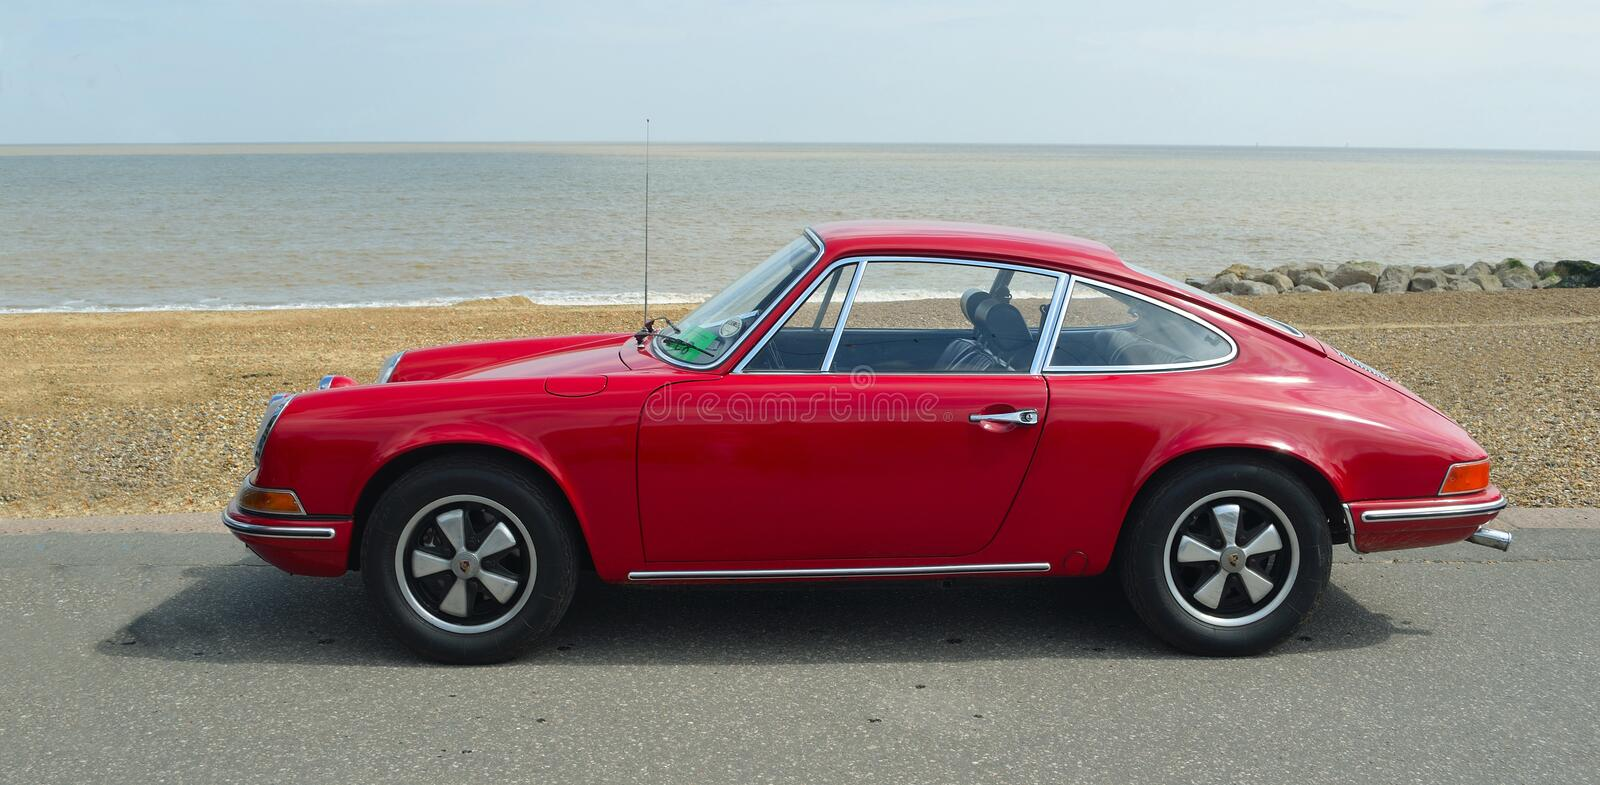 Classic Red Porsche 912 parked on seafront promenade. royalty free stock image